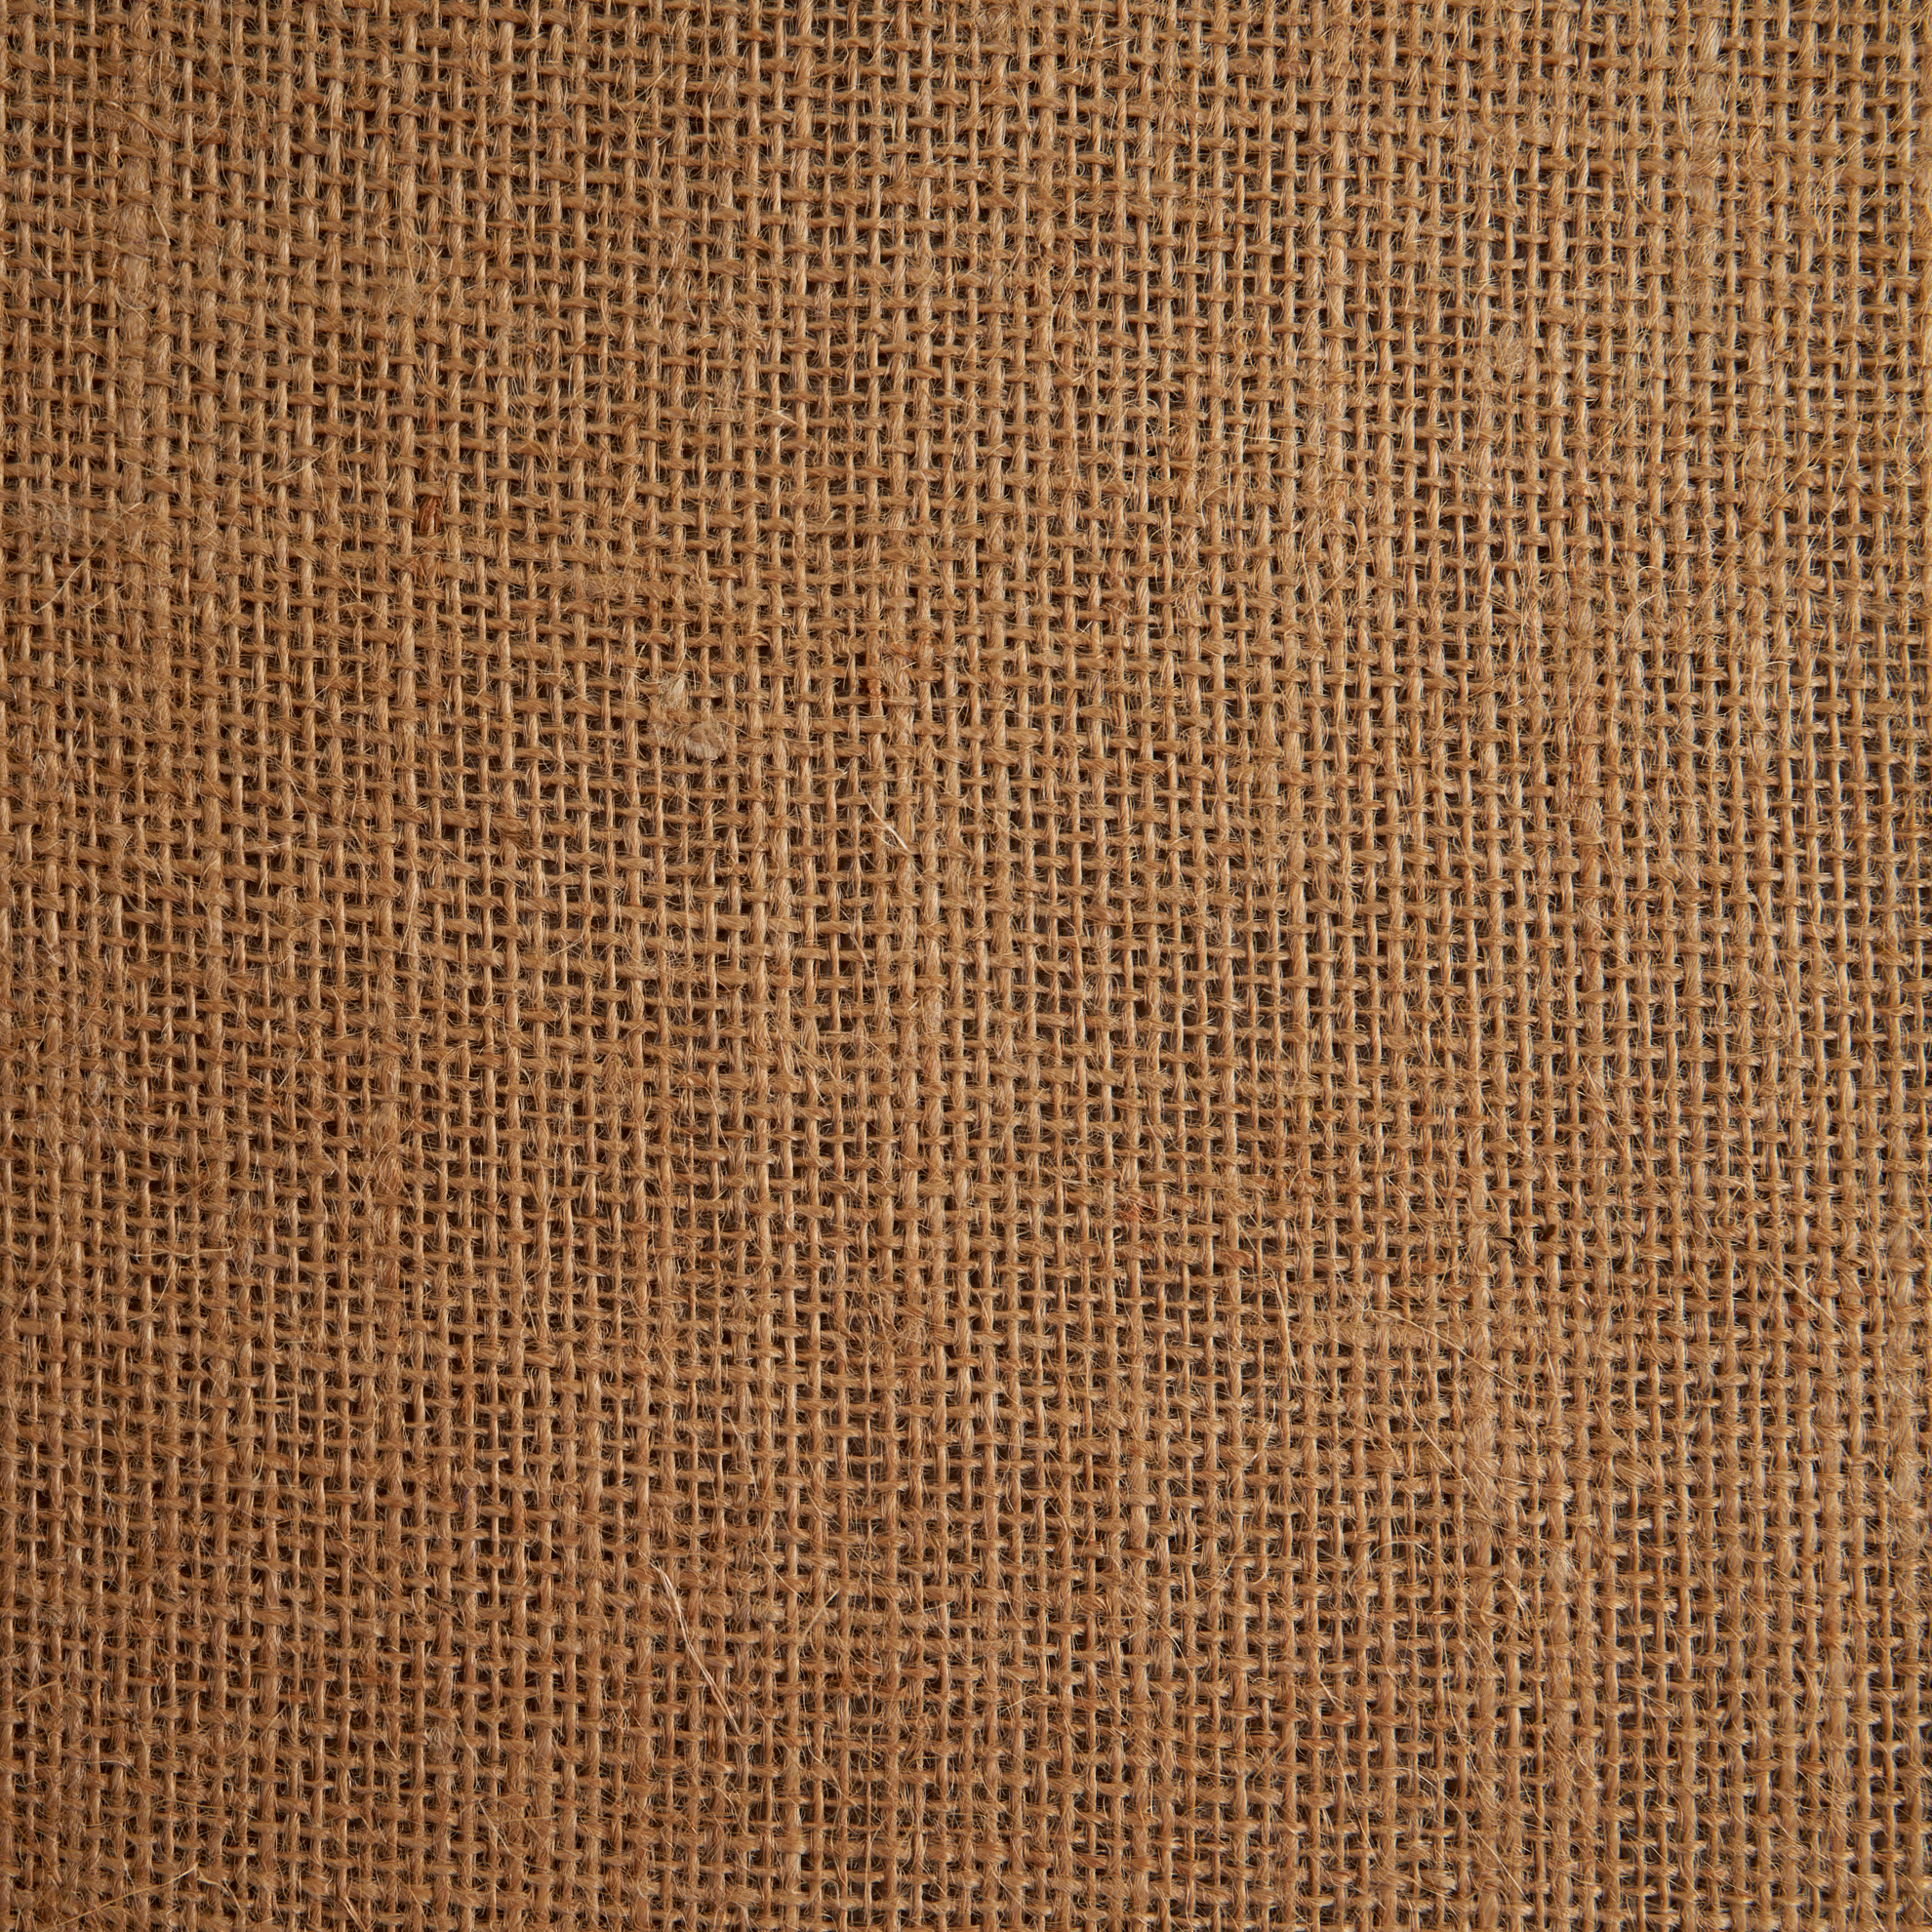 40'' Burlap Natural Fabric by Plastex in USA